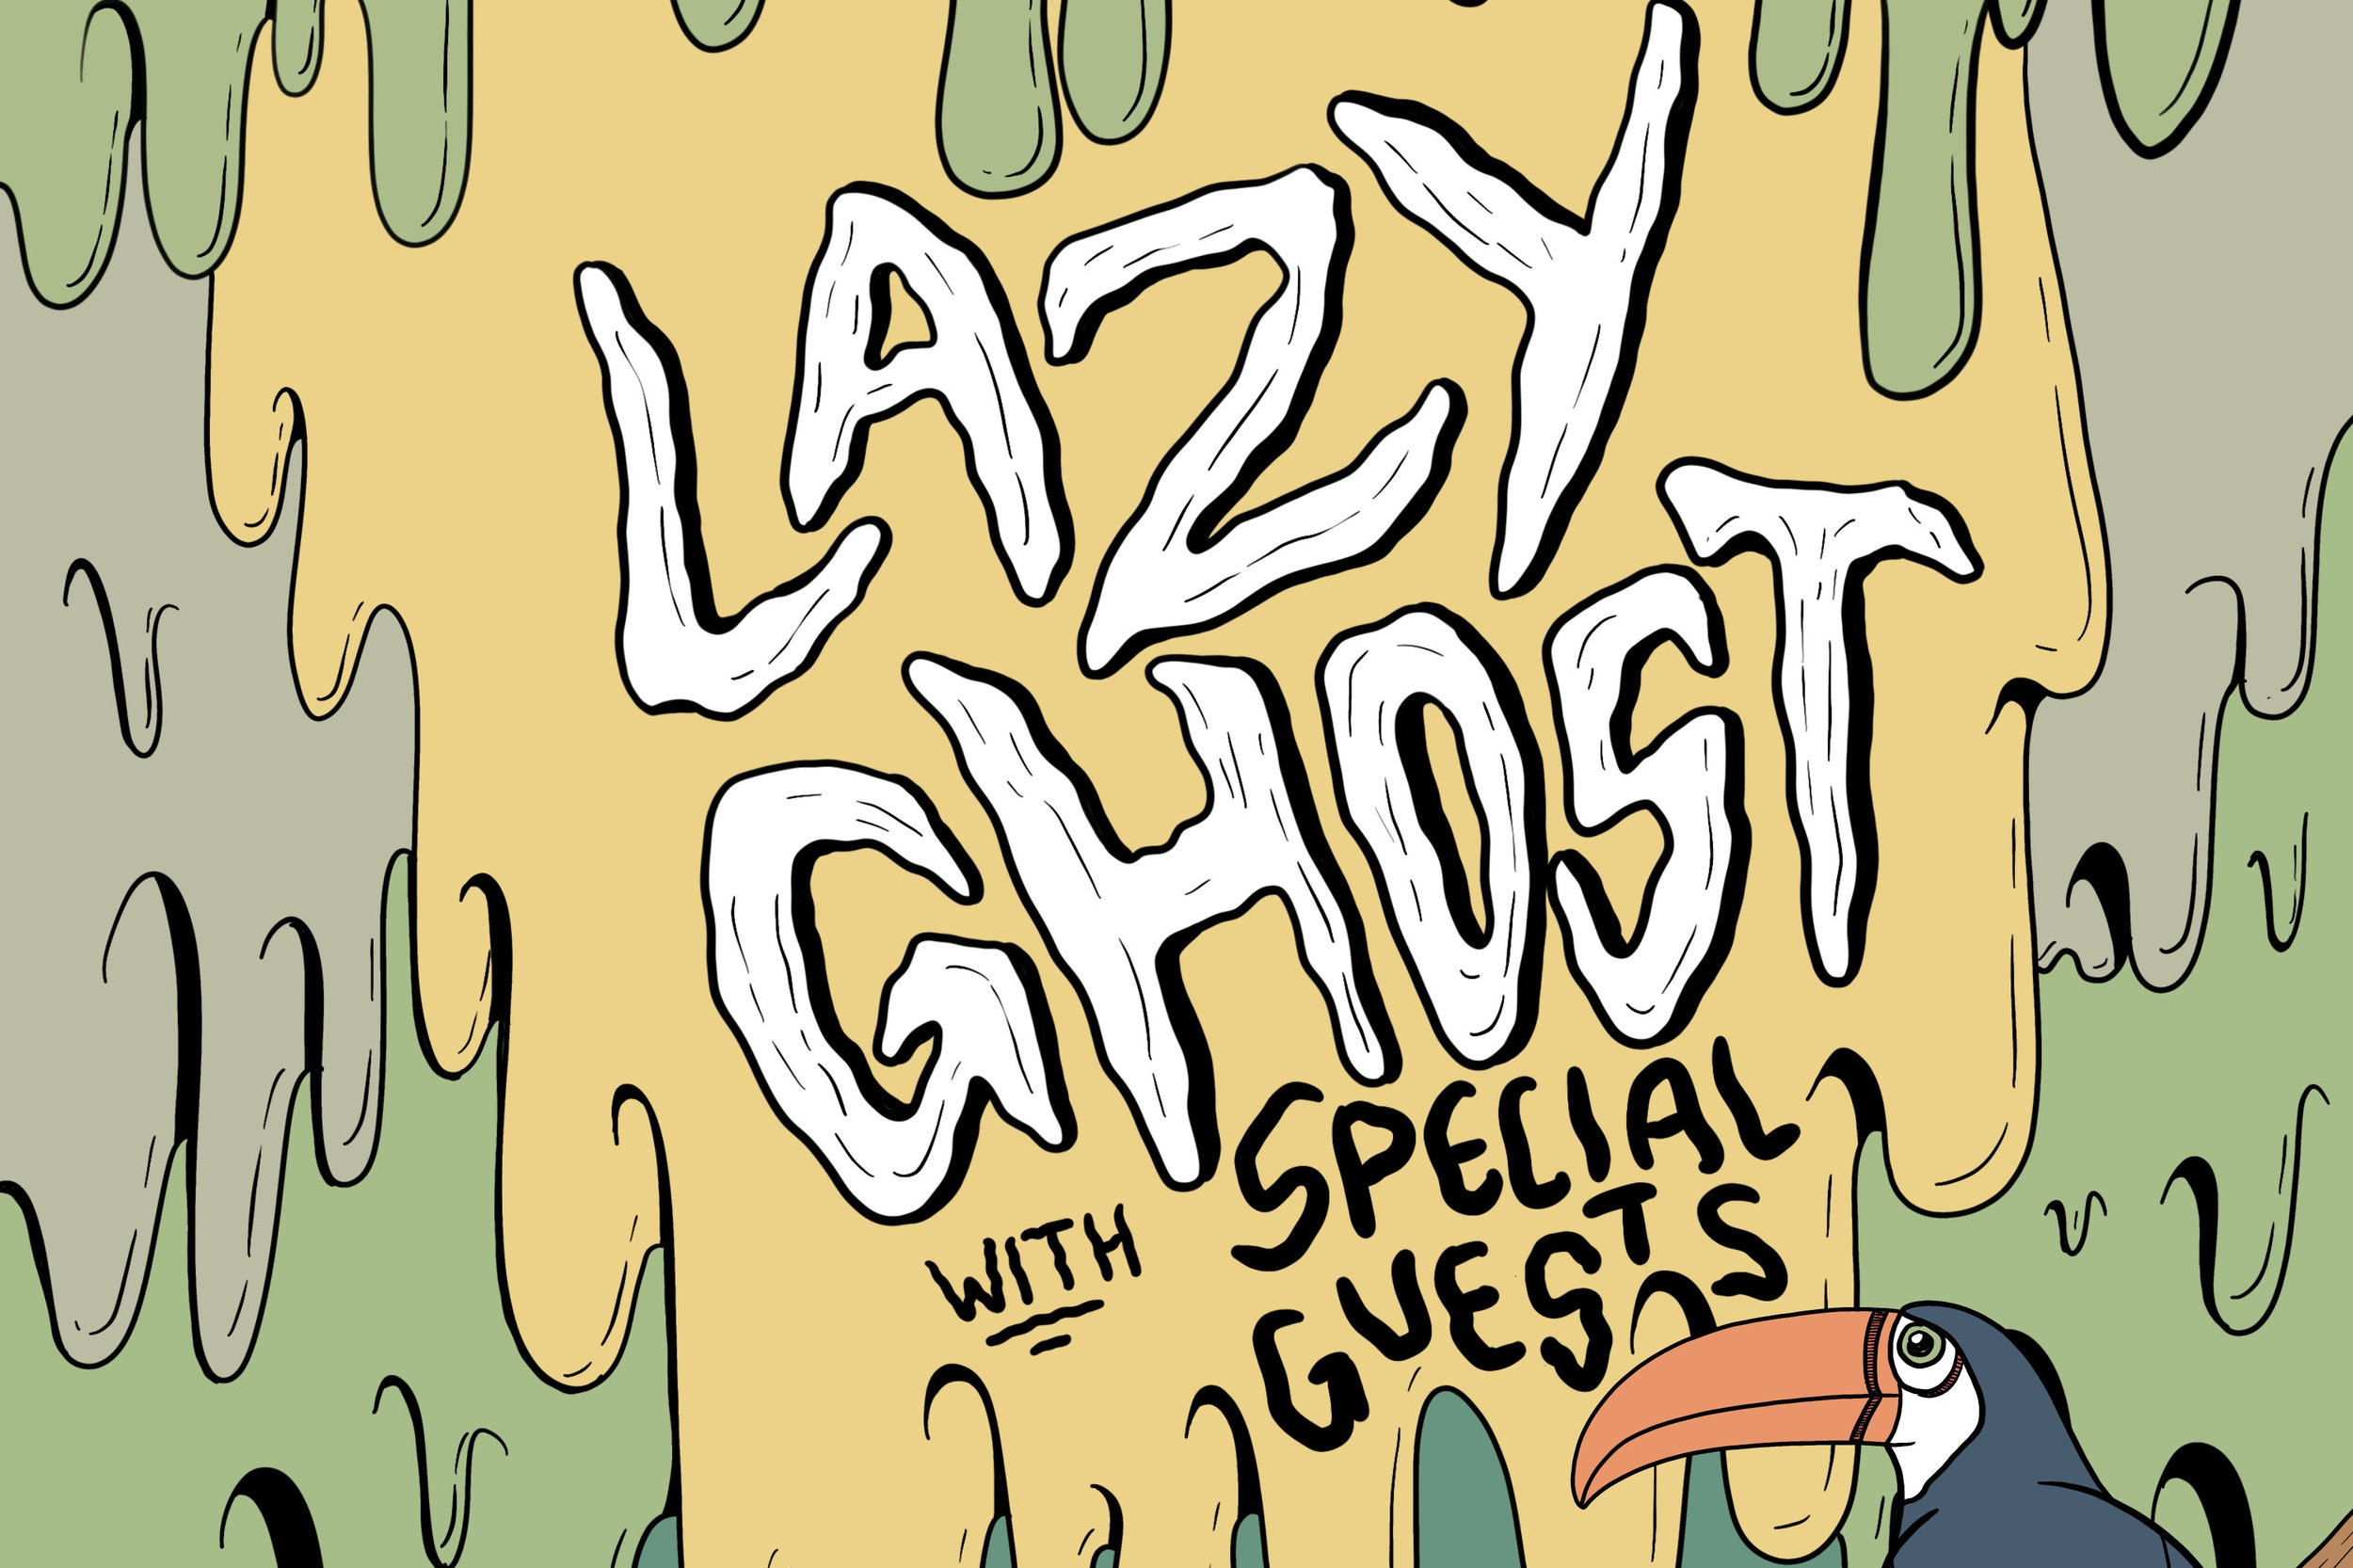 Lazy+Ghost+Band+Poster+2+March.jpg